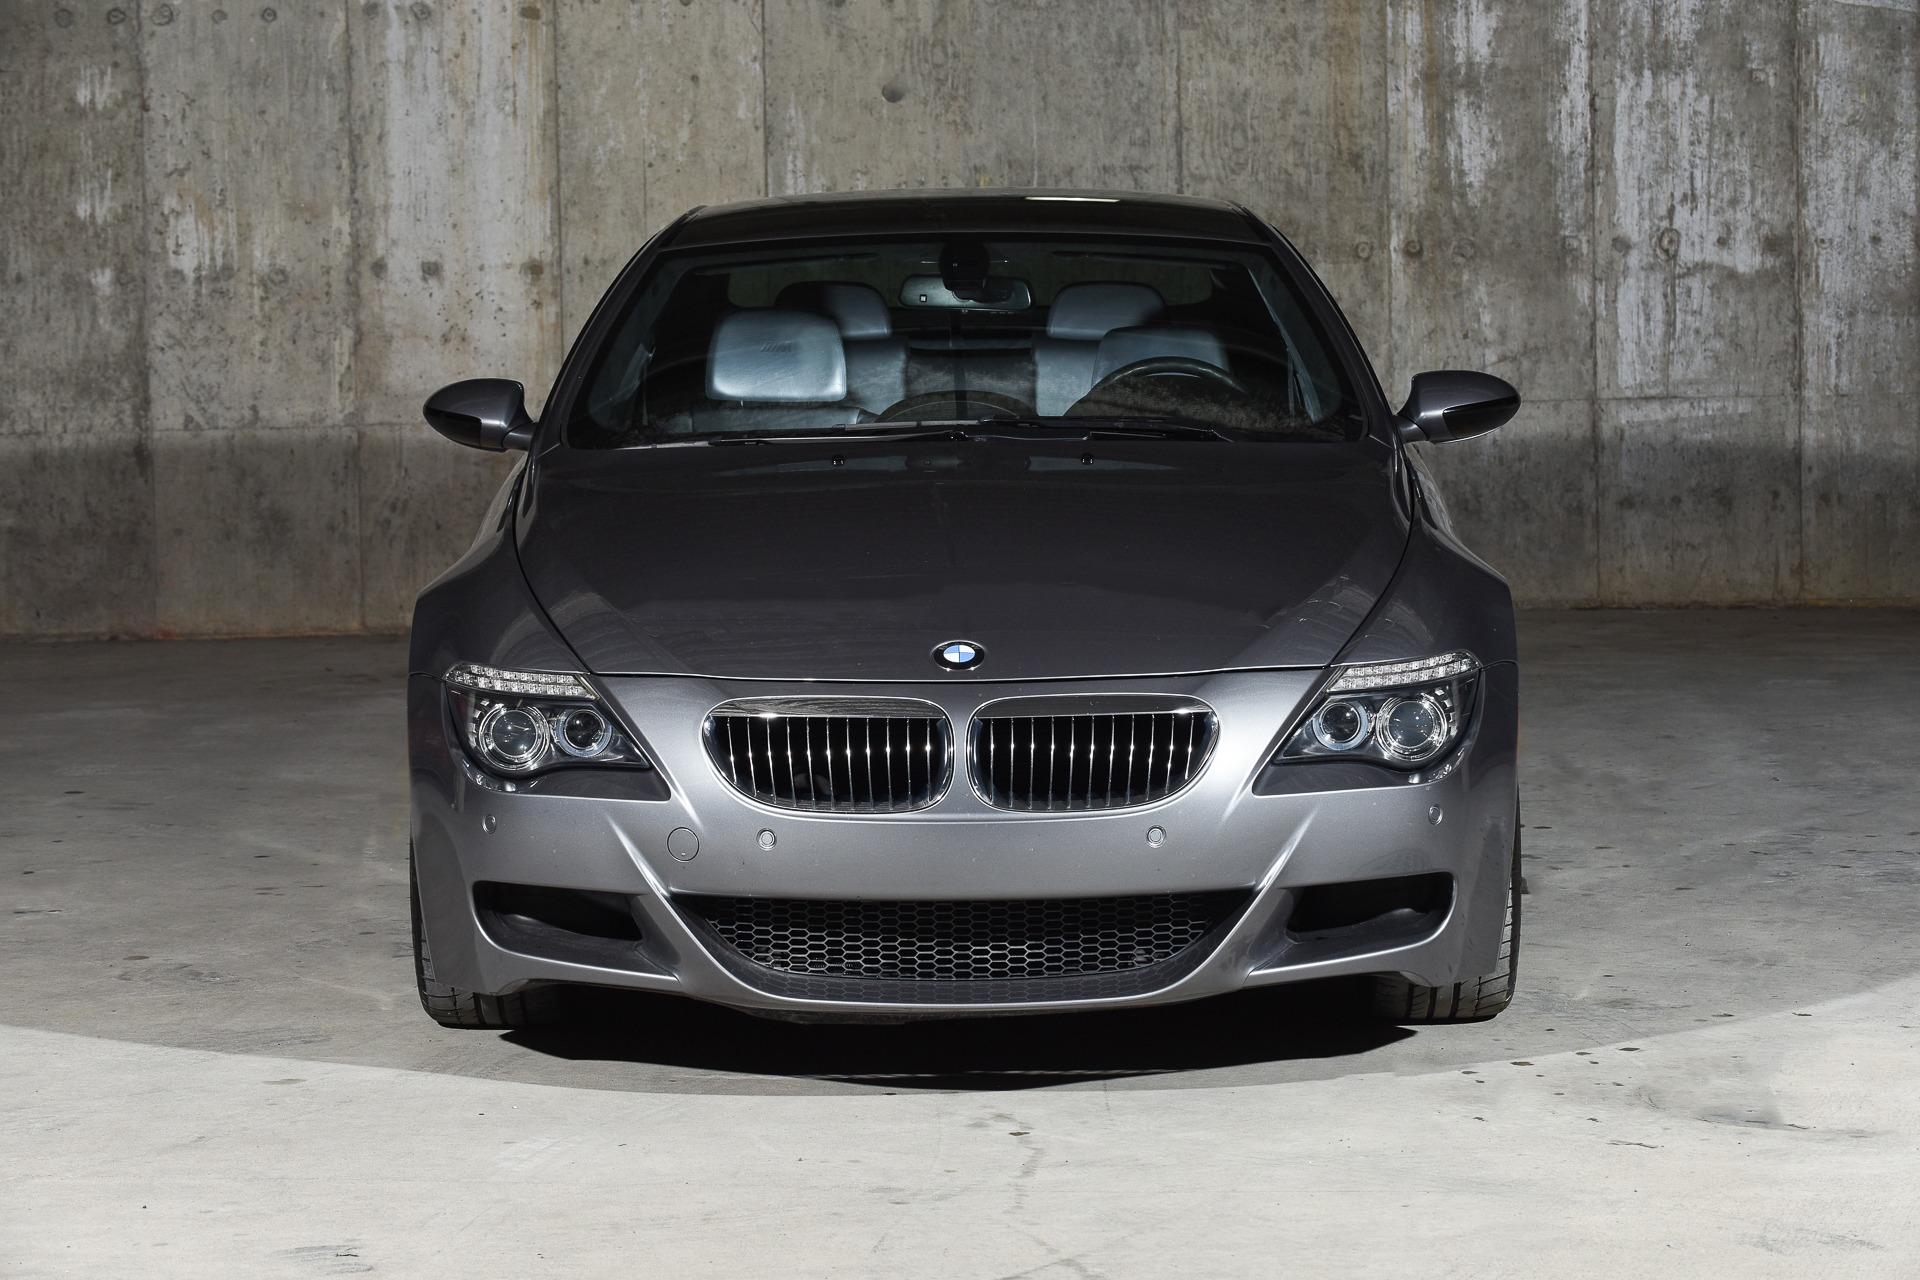 2008 bmw m6 manual stock 101 for sale near valley stream. Black Bedroom Furniture Sets. Home Design Ideas